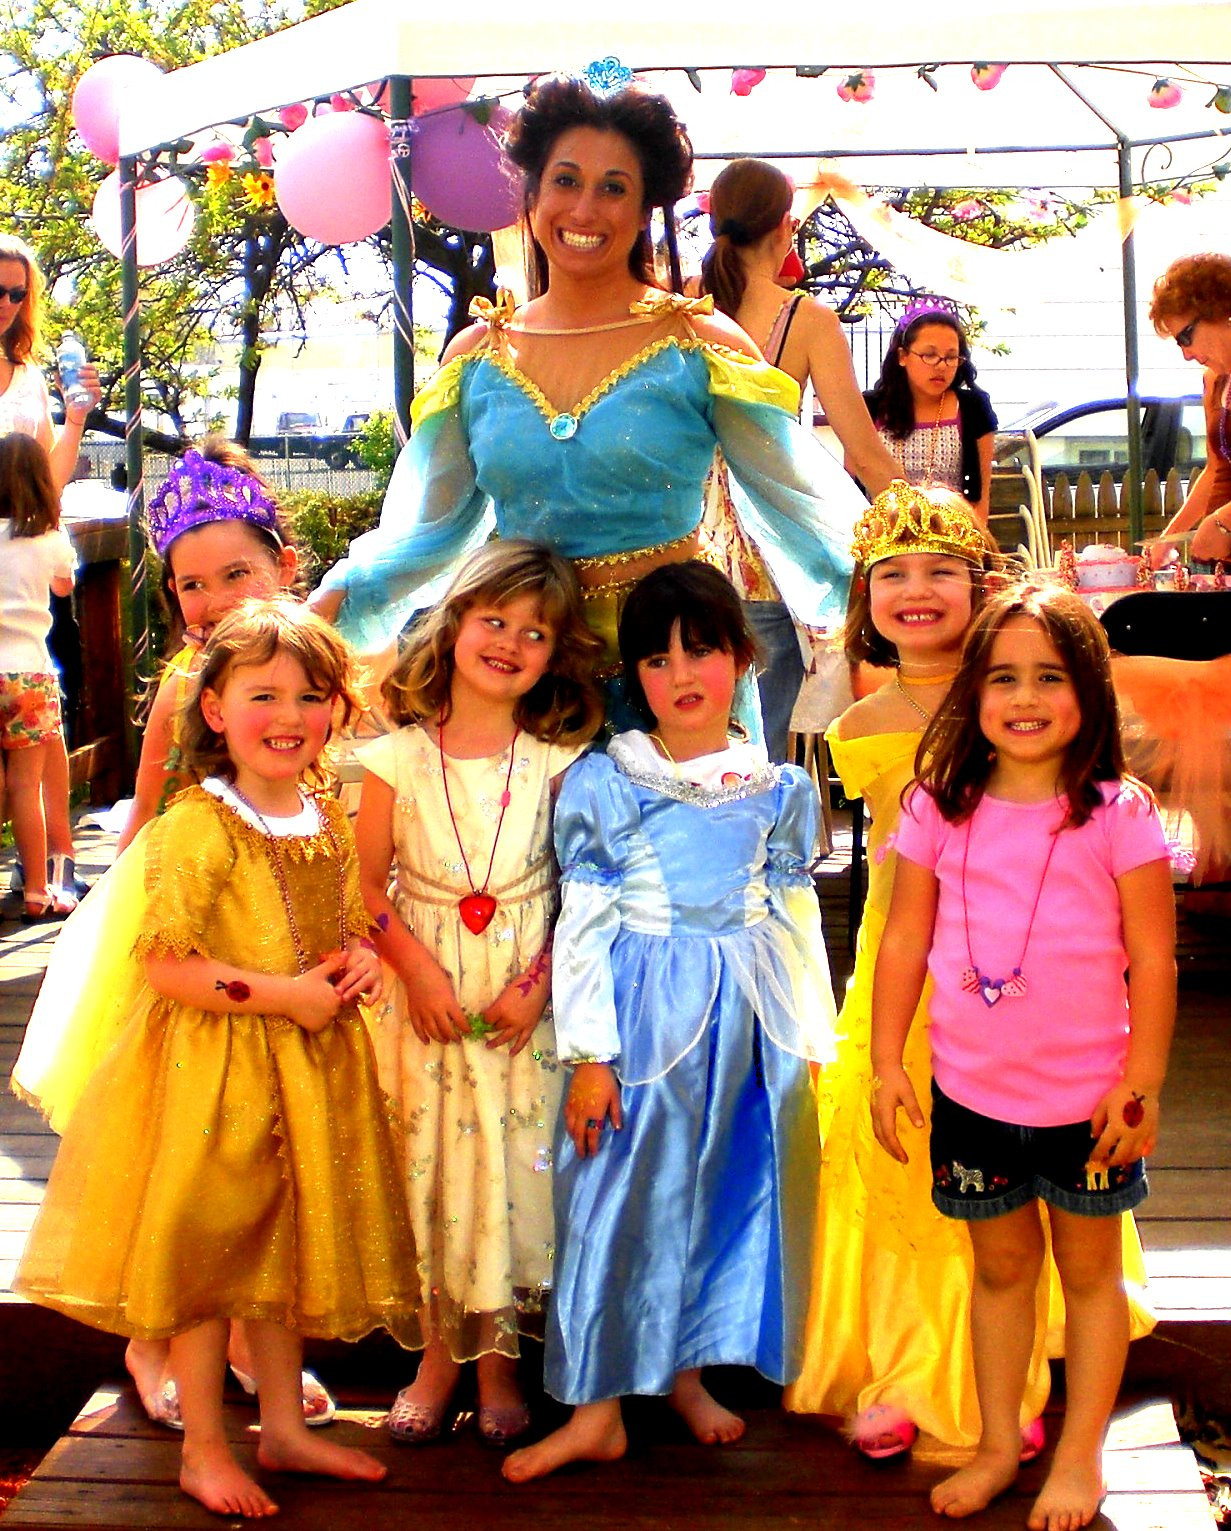 Kids Birthday Party South Jersey  Princess Party Characters Spa Parties NJ 856 396 9595